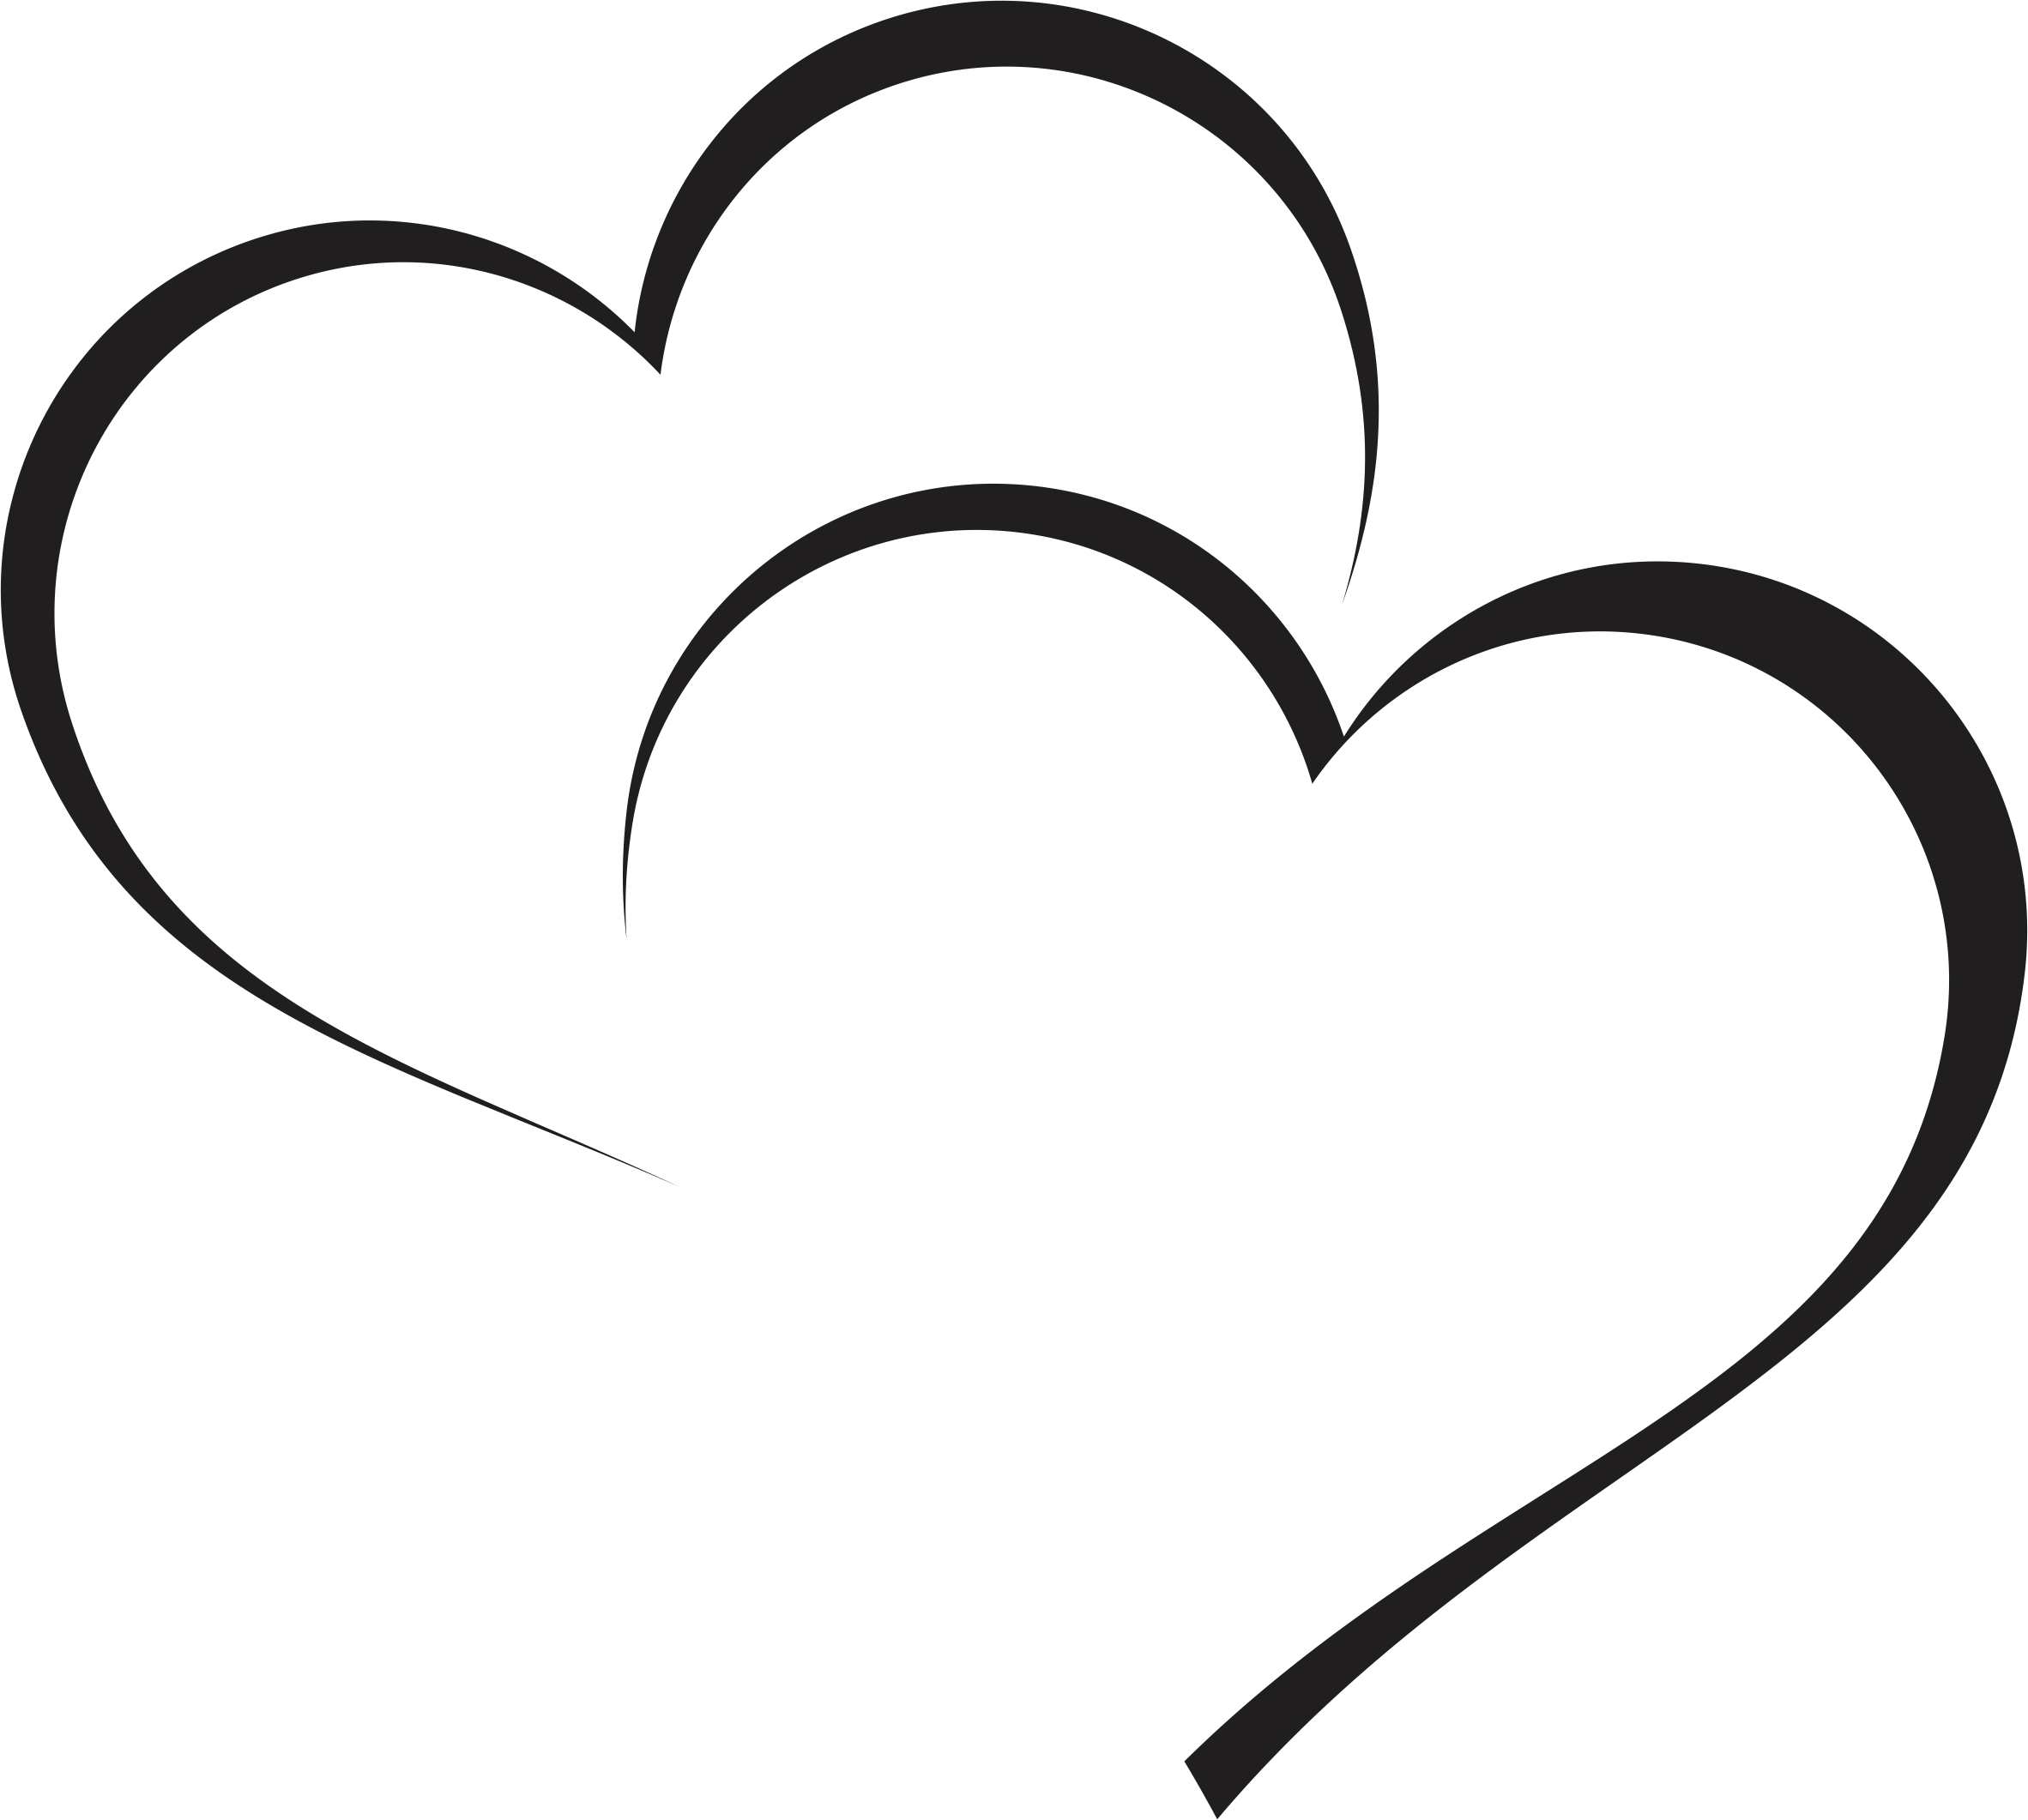 Heart Outlines   Free download on ClipArtMag